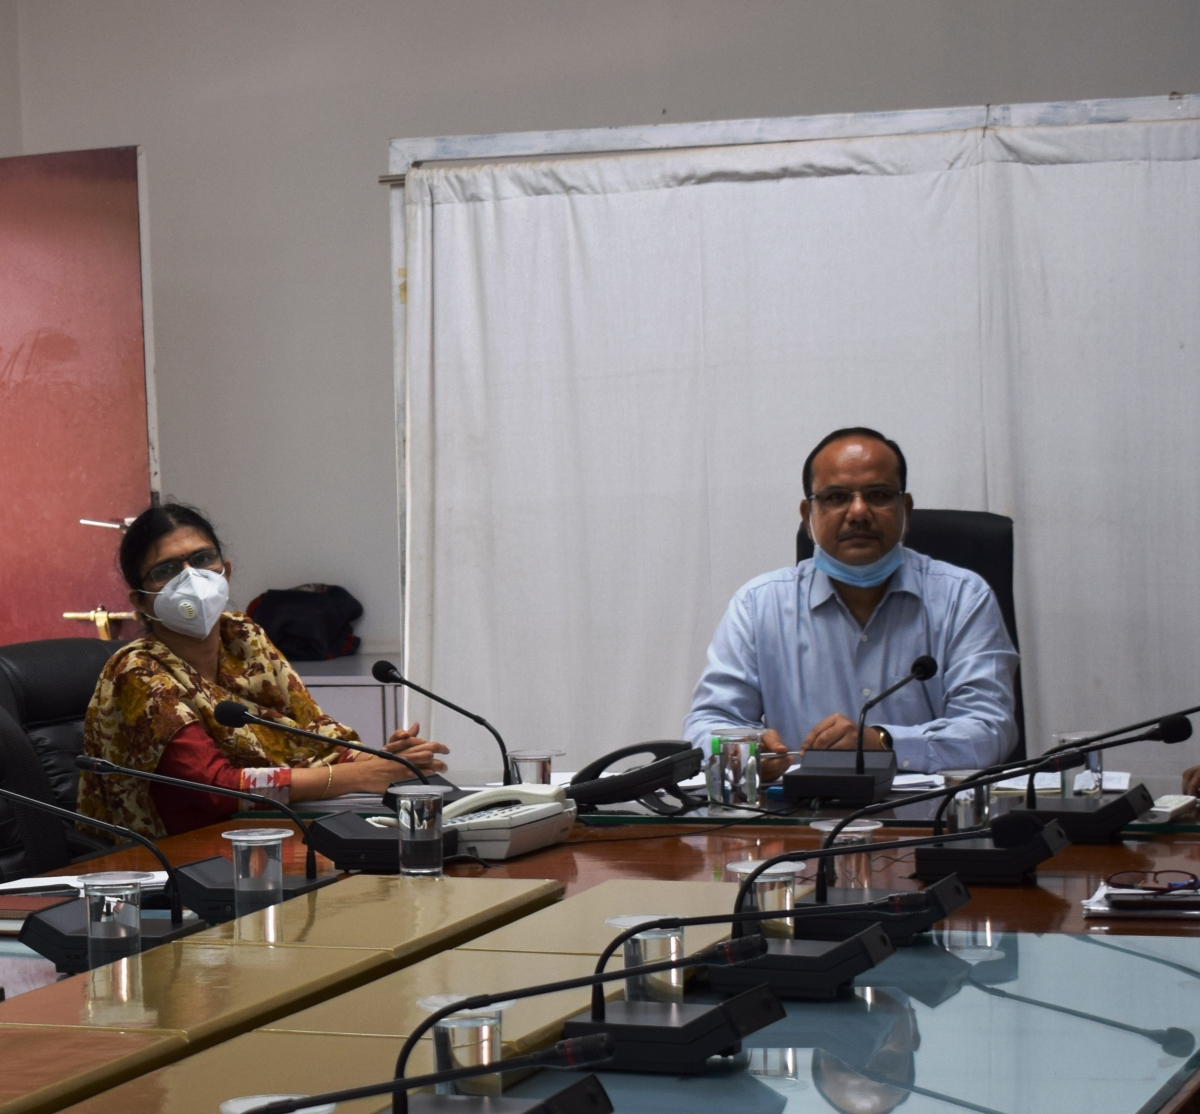 Arvind Malkhede, Divisional Railway Manager conducts press conference through video link